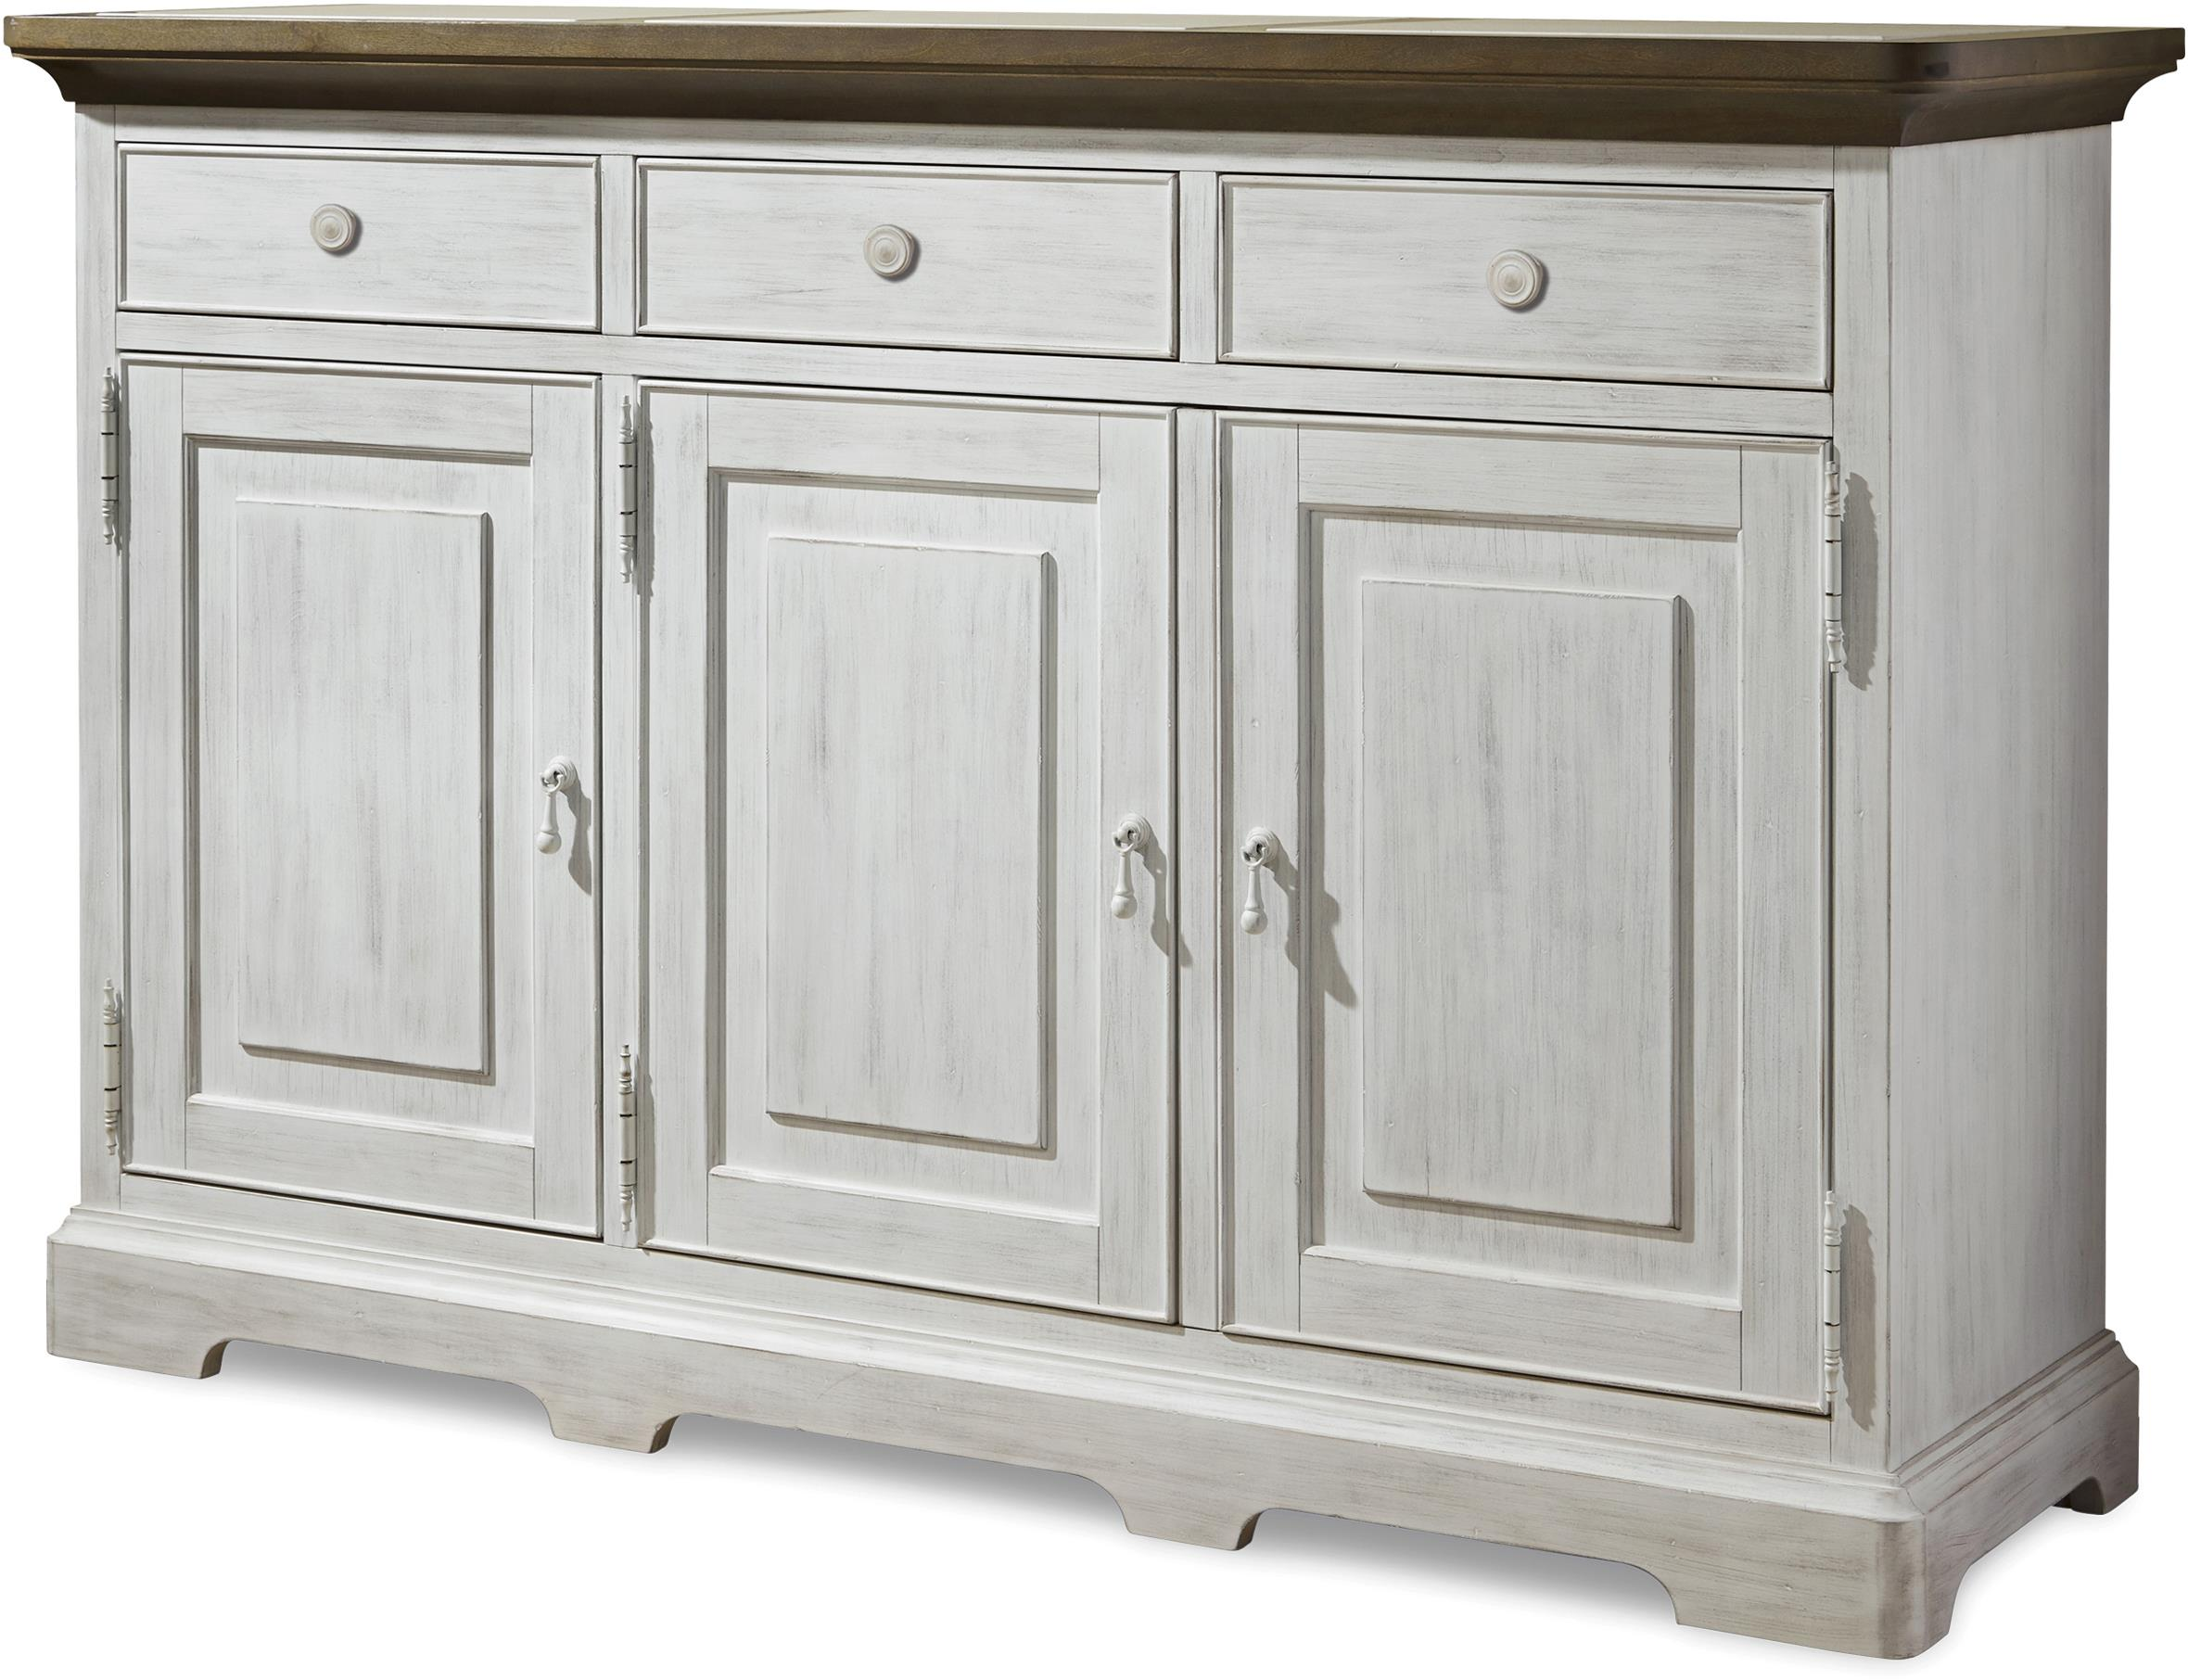 Universal Dogwood Credenza - Item Number: 597A679